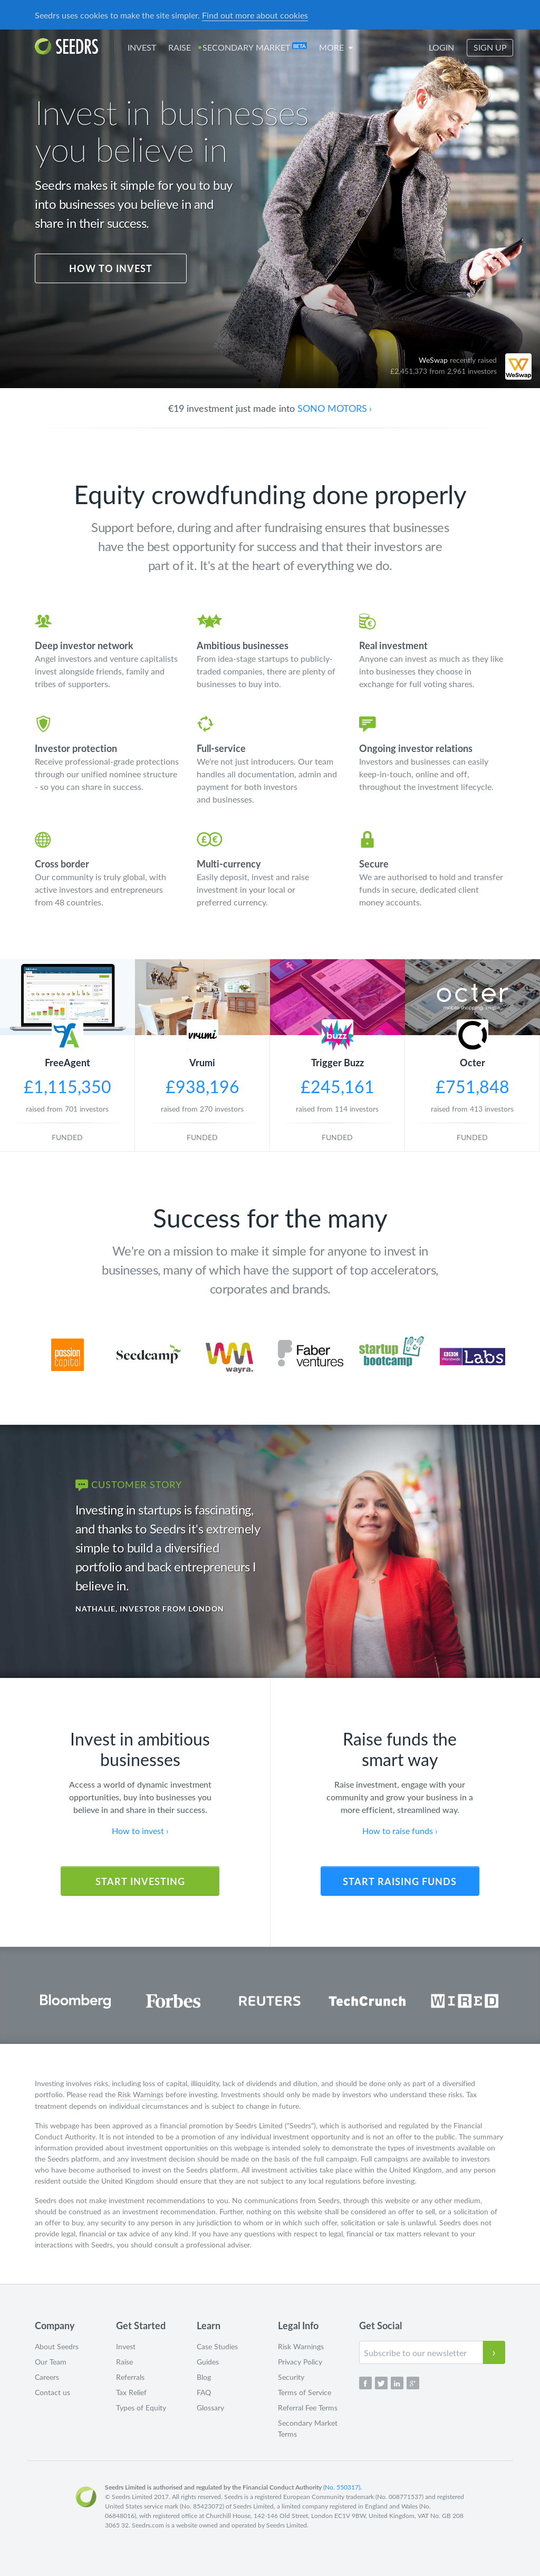 Seedrs Competitors, Revenue and Employees - Owler Company Profile